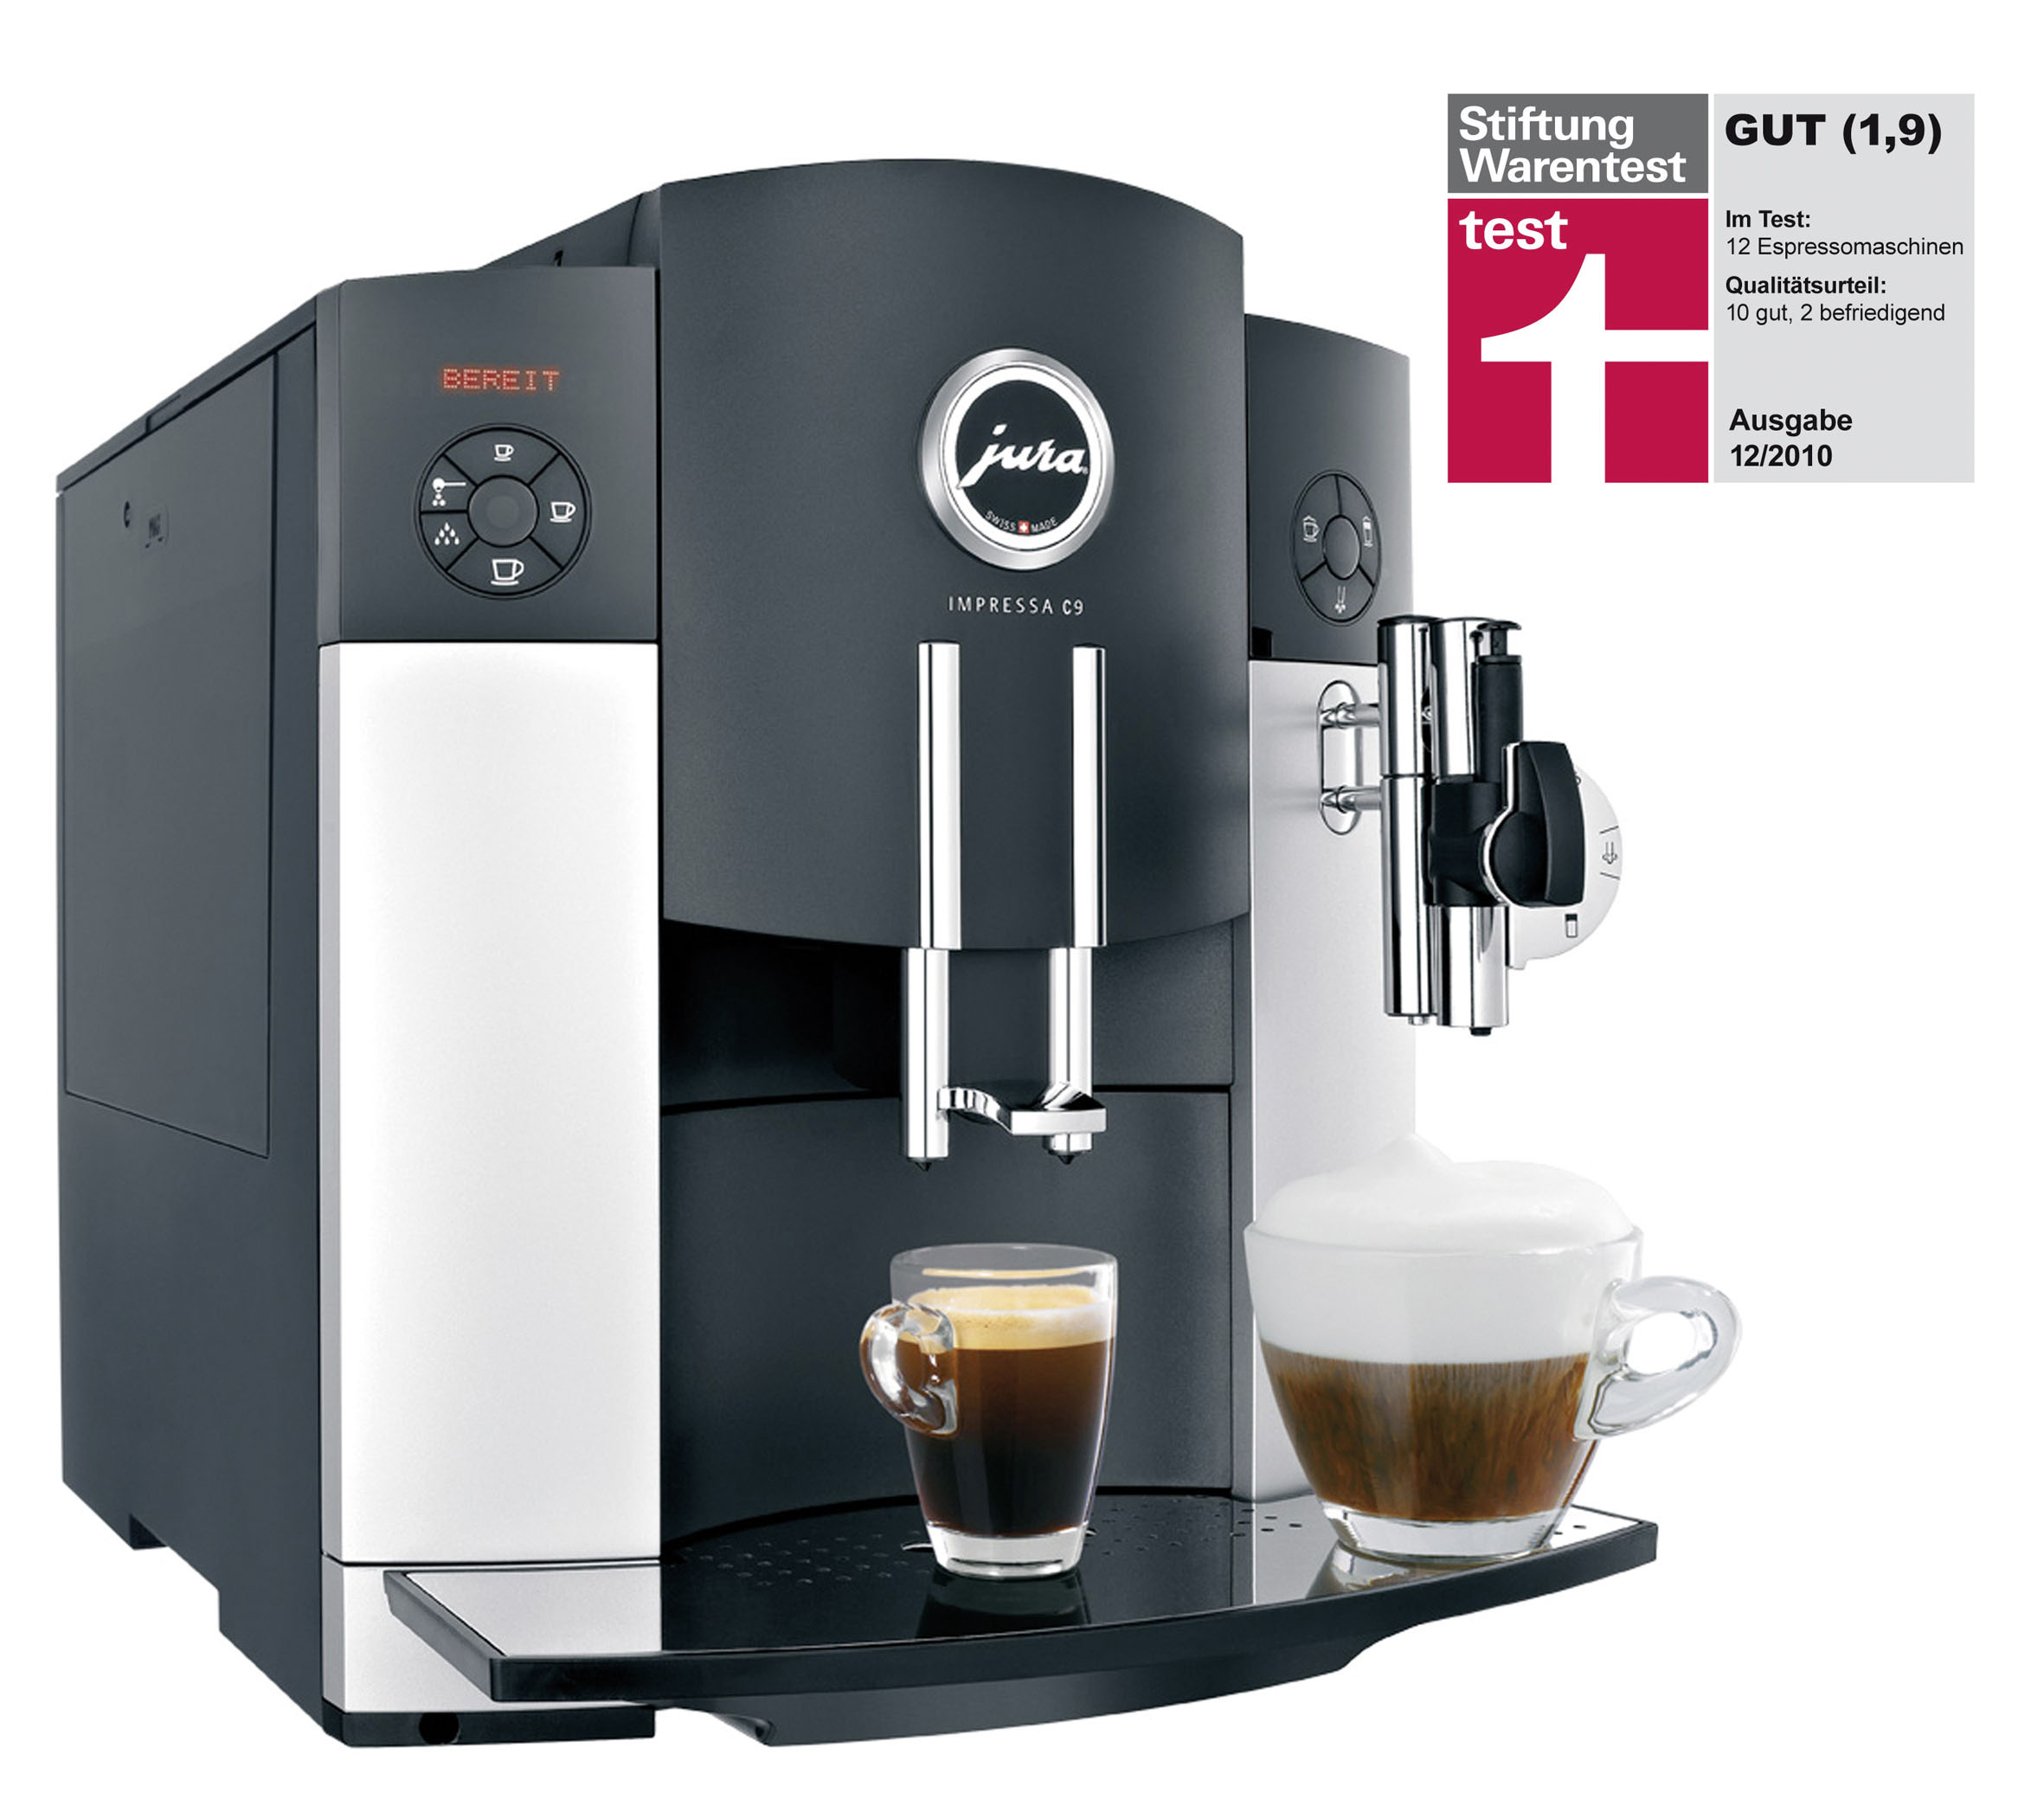 jura kaffeevollautomat impressa c9 mit sonderlob f r exzellenten cappuccino. Black Bedroom Furniture Sets. Home Design Ideas